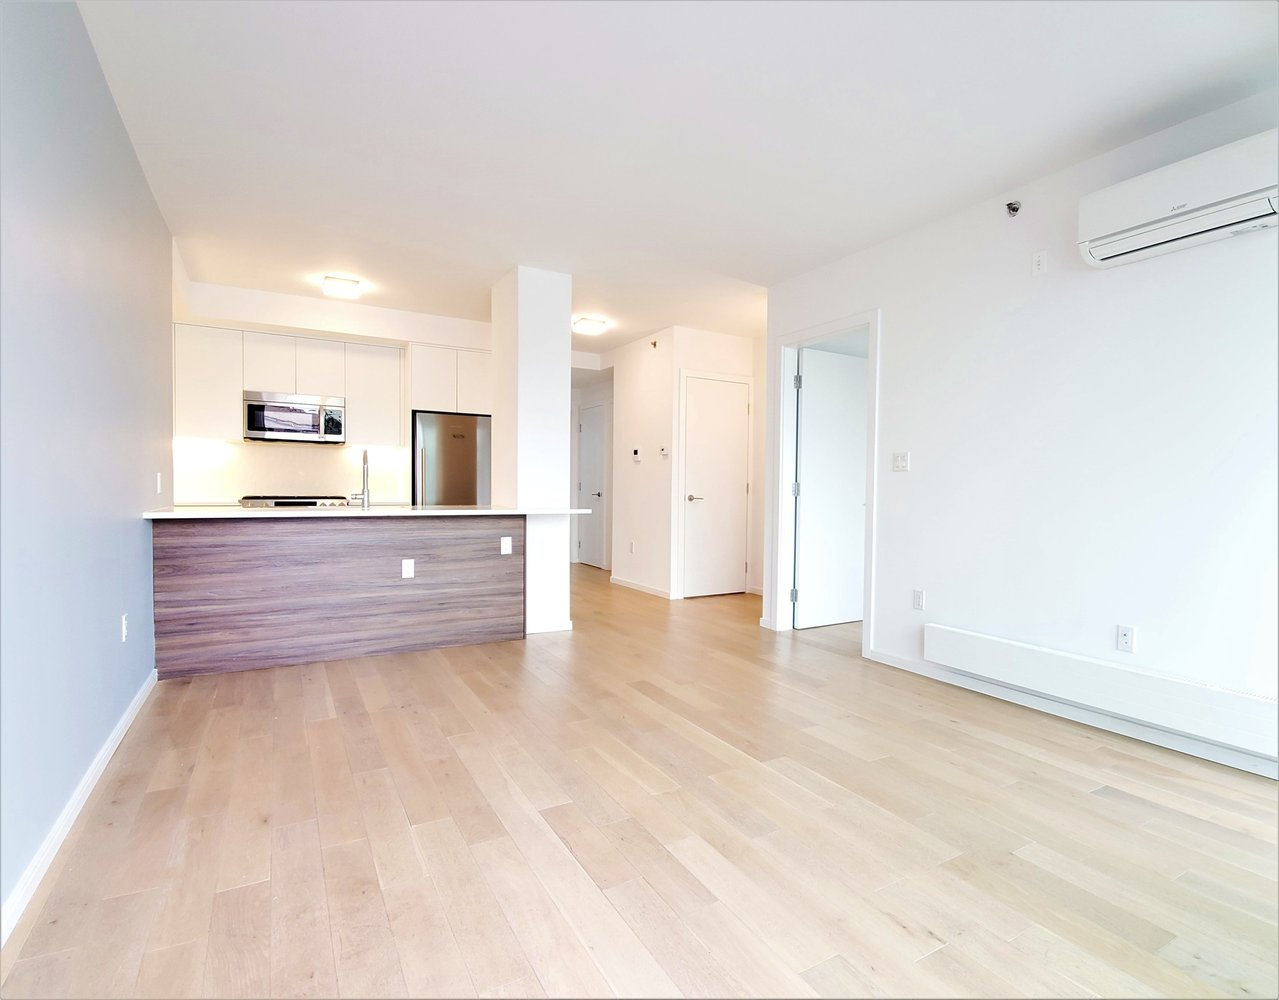 40 Pinehurst Avenue, Unit 4D Manhattan, NY 10033